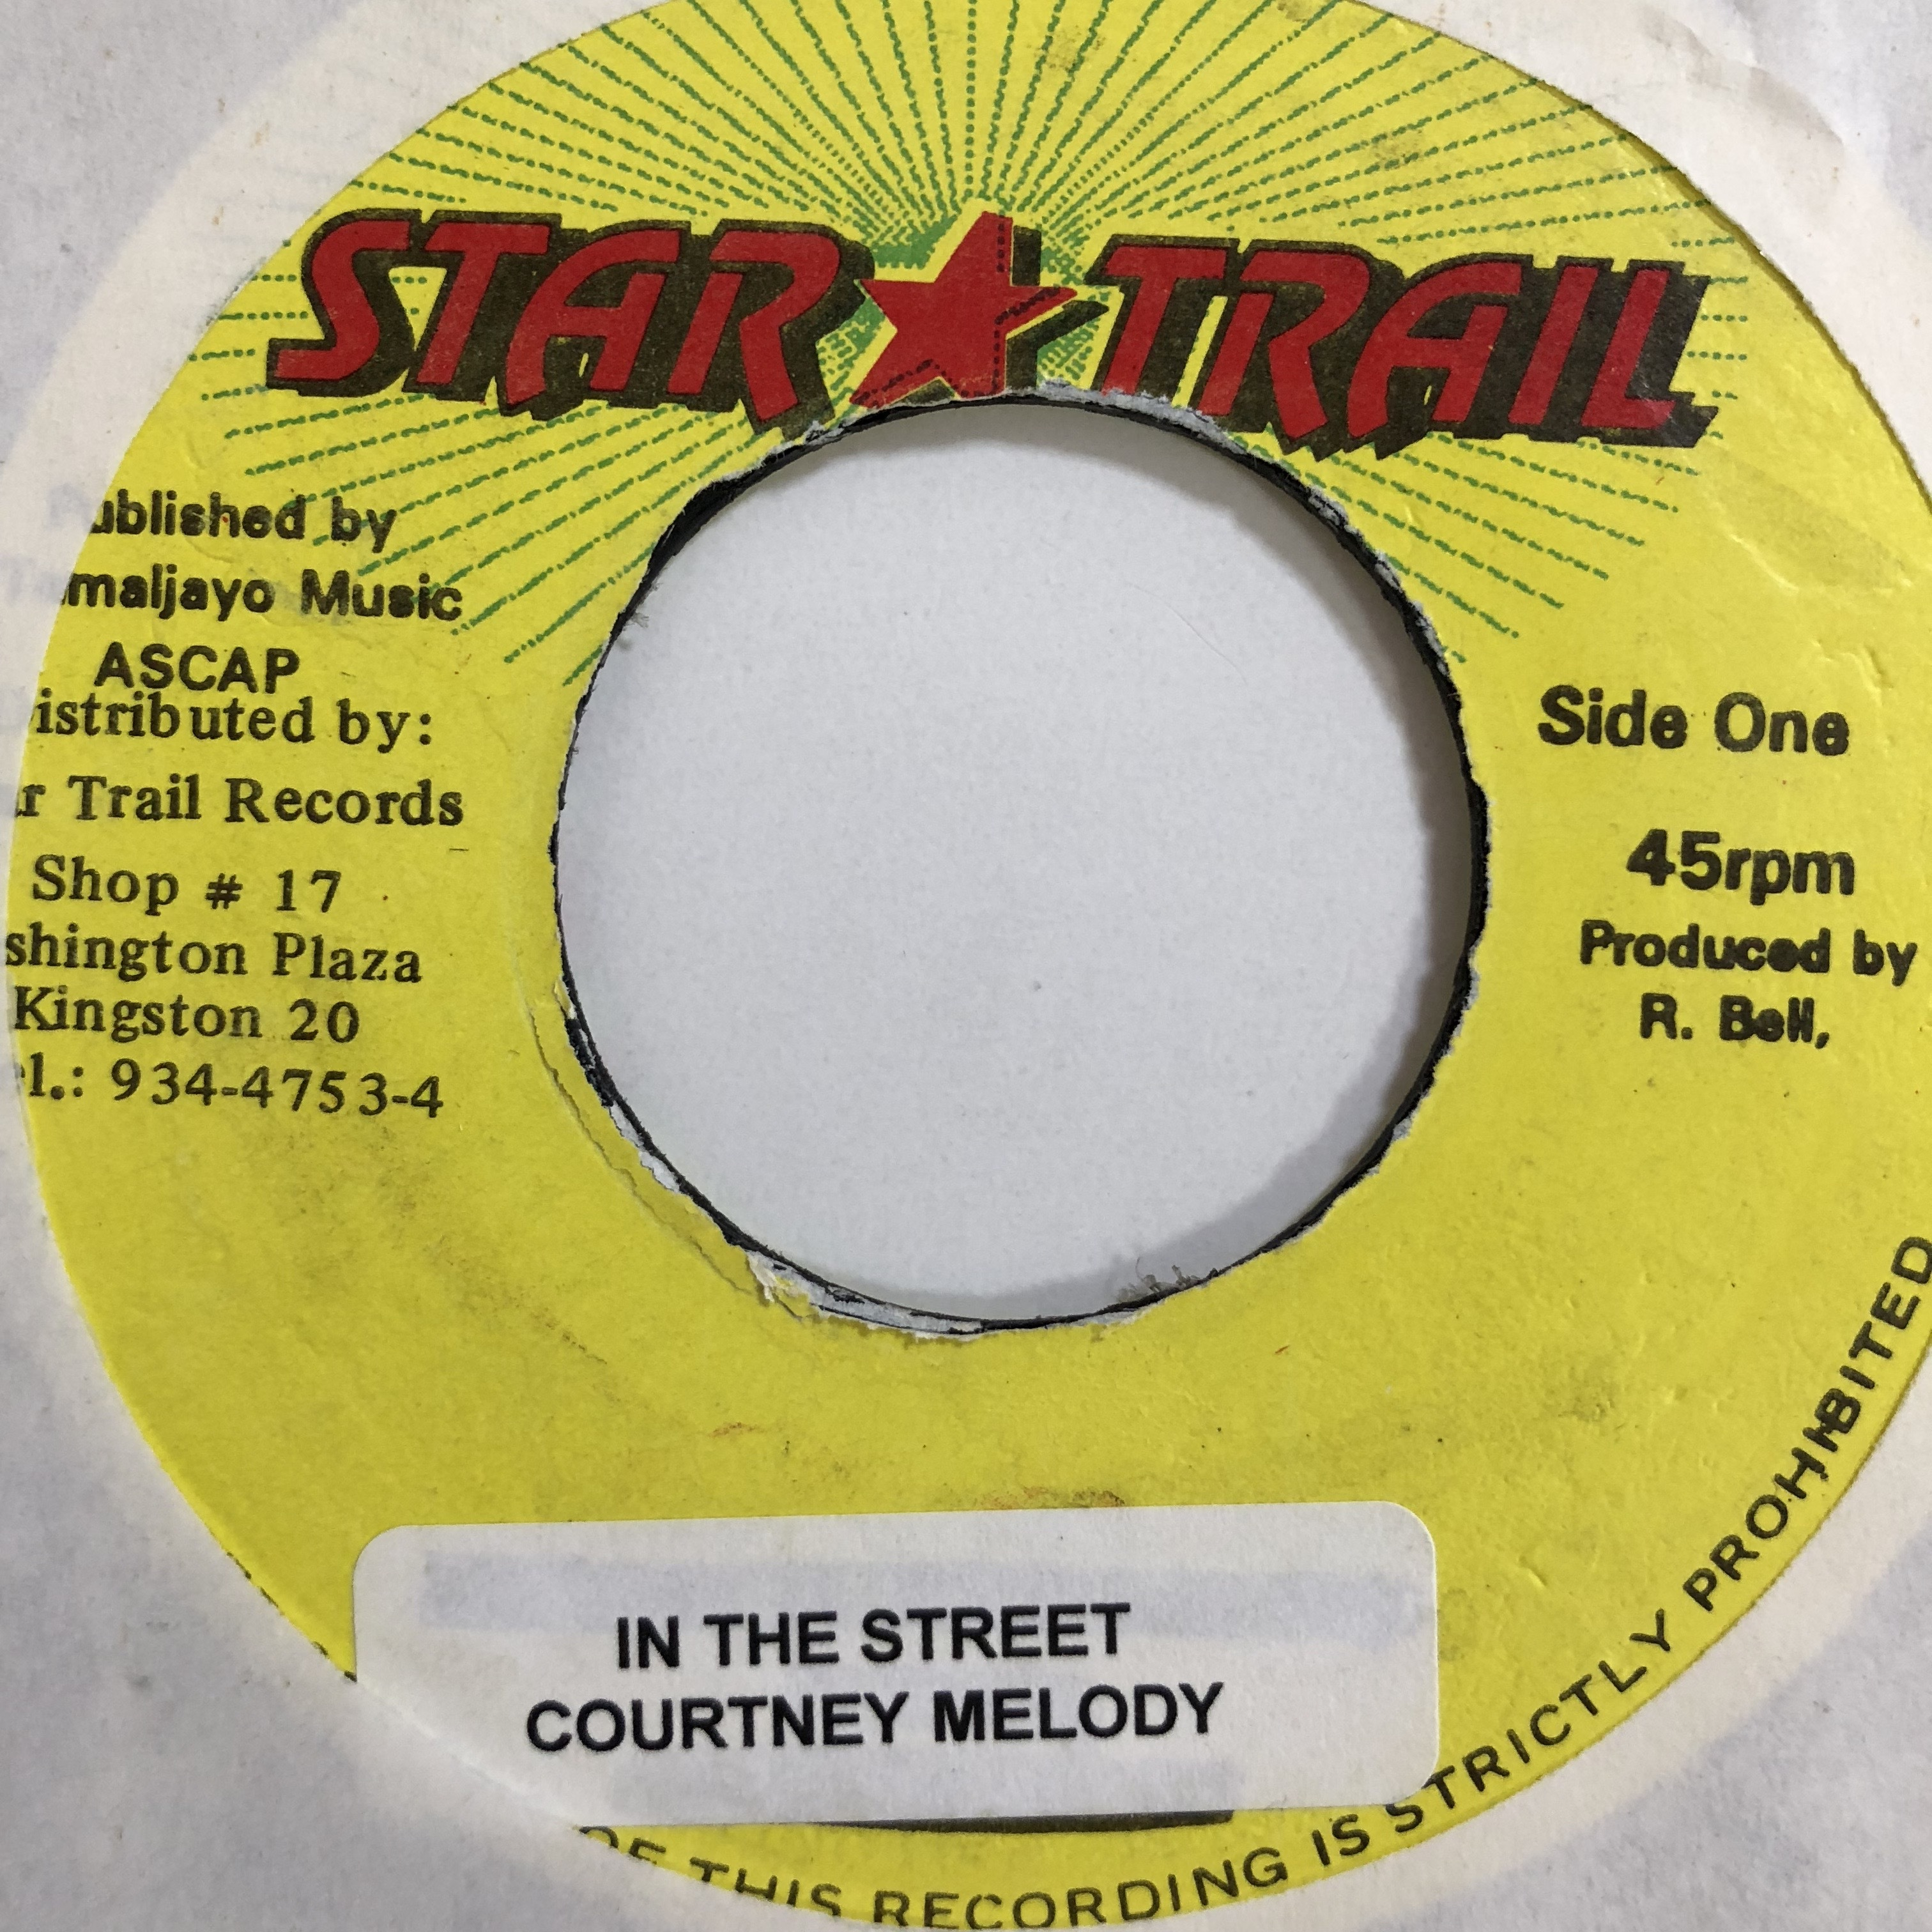 Courtney Melody(コートニーメロディ) - In The Street【7-10737】